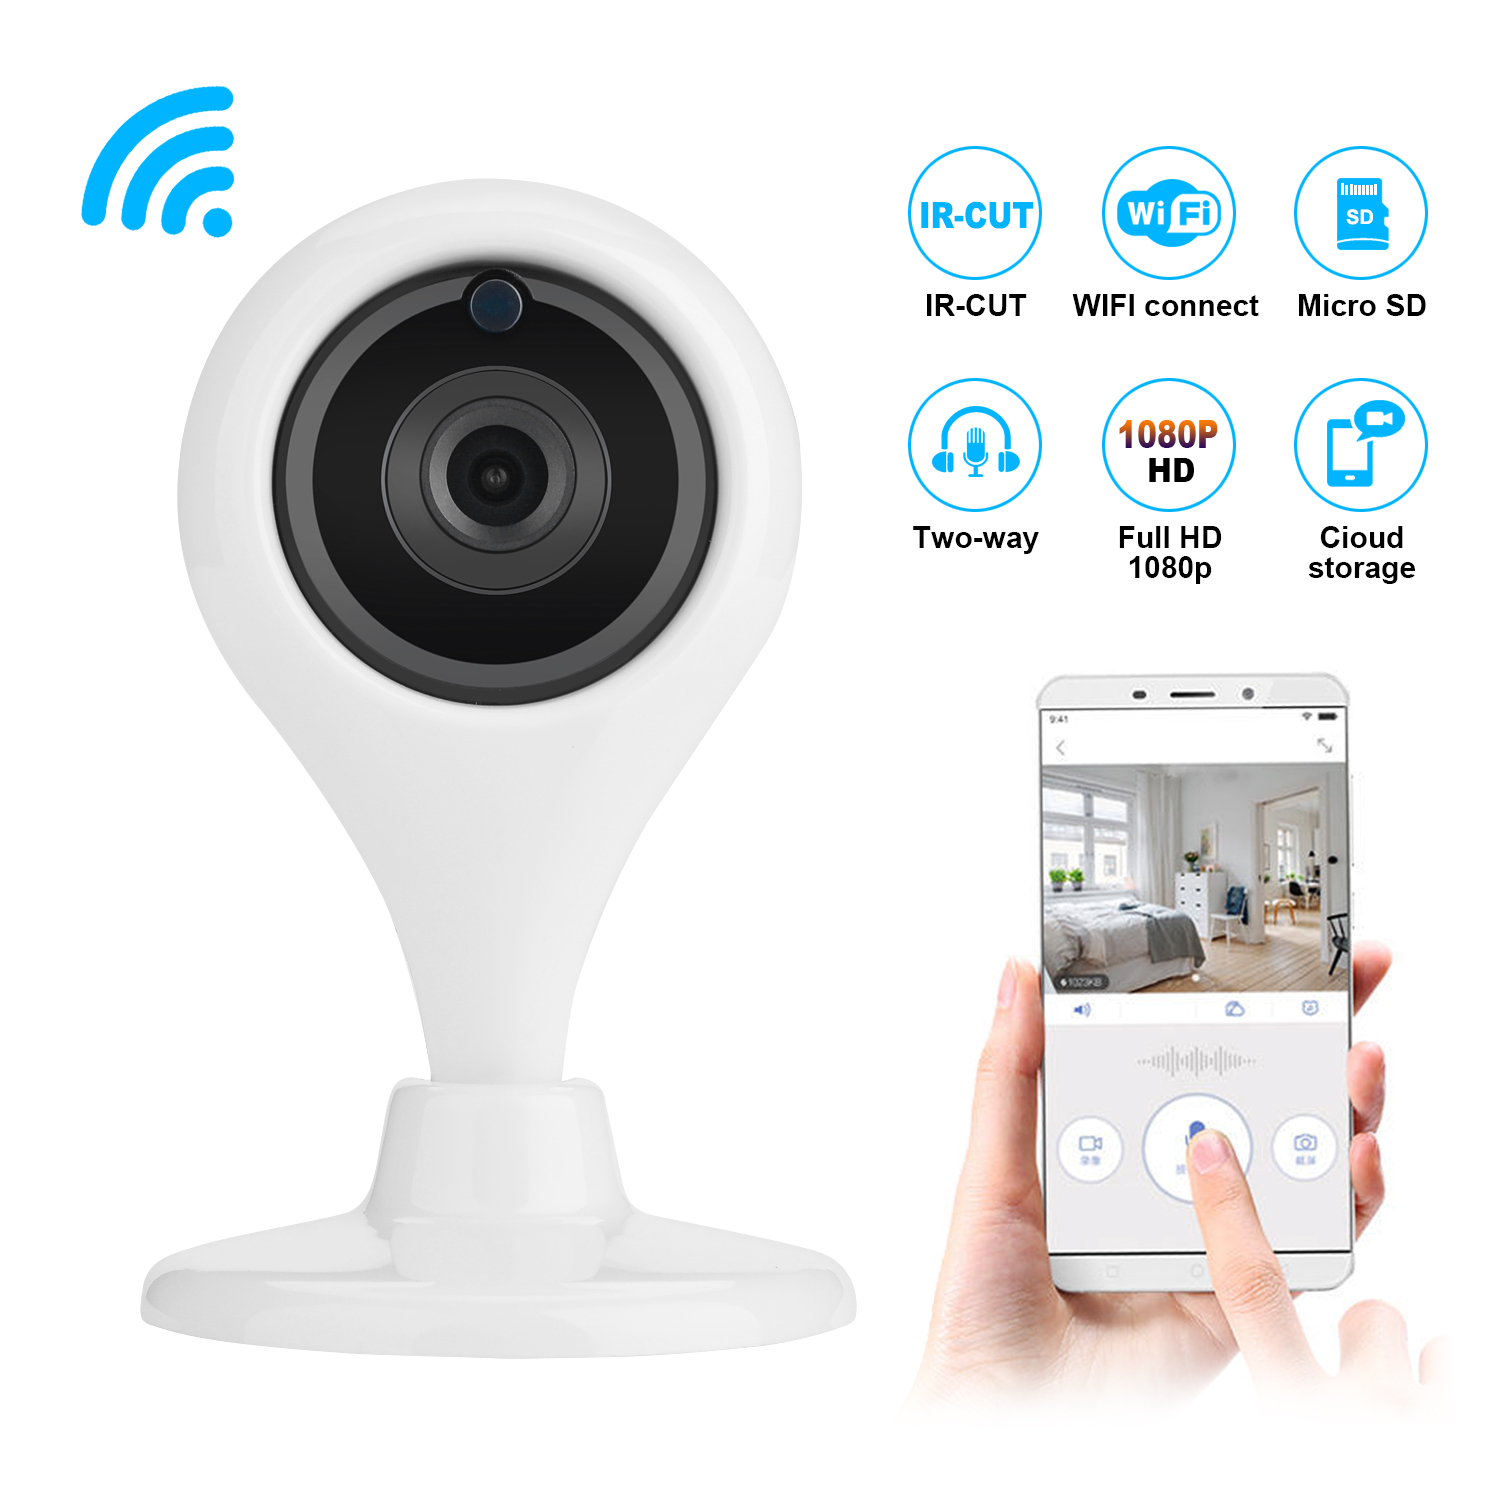 Details about 360° Wireless Wifi Smart Camera Home Security Surveillance  Video System Detector